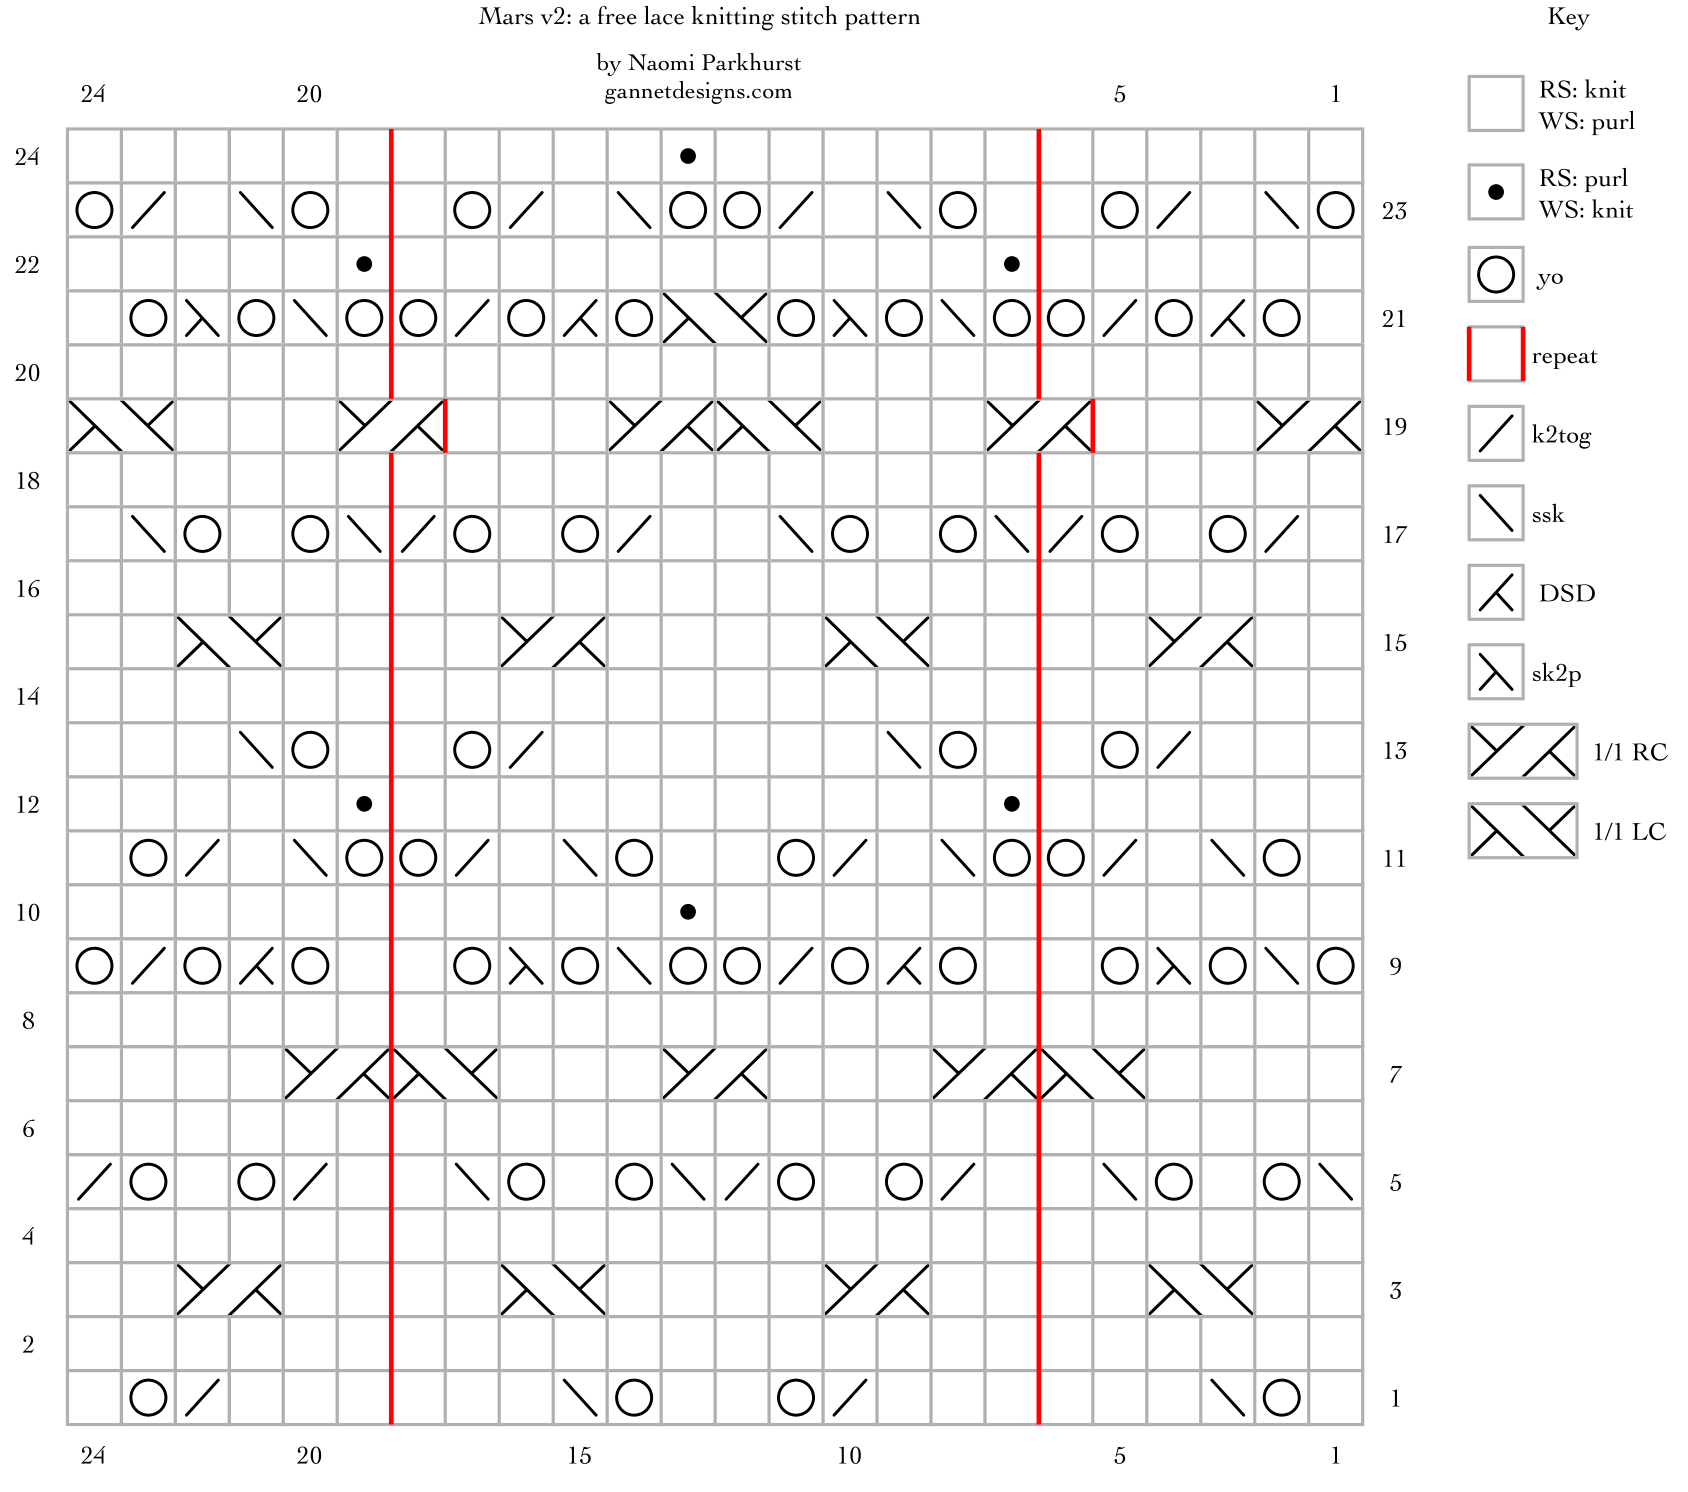 Mars version 2: a free lace knitting stitch pattern chart by Naomi Parkhurst